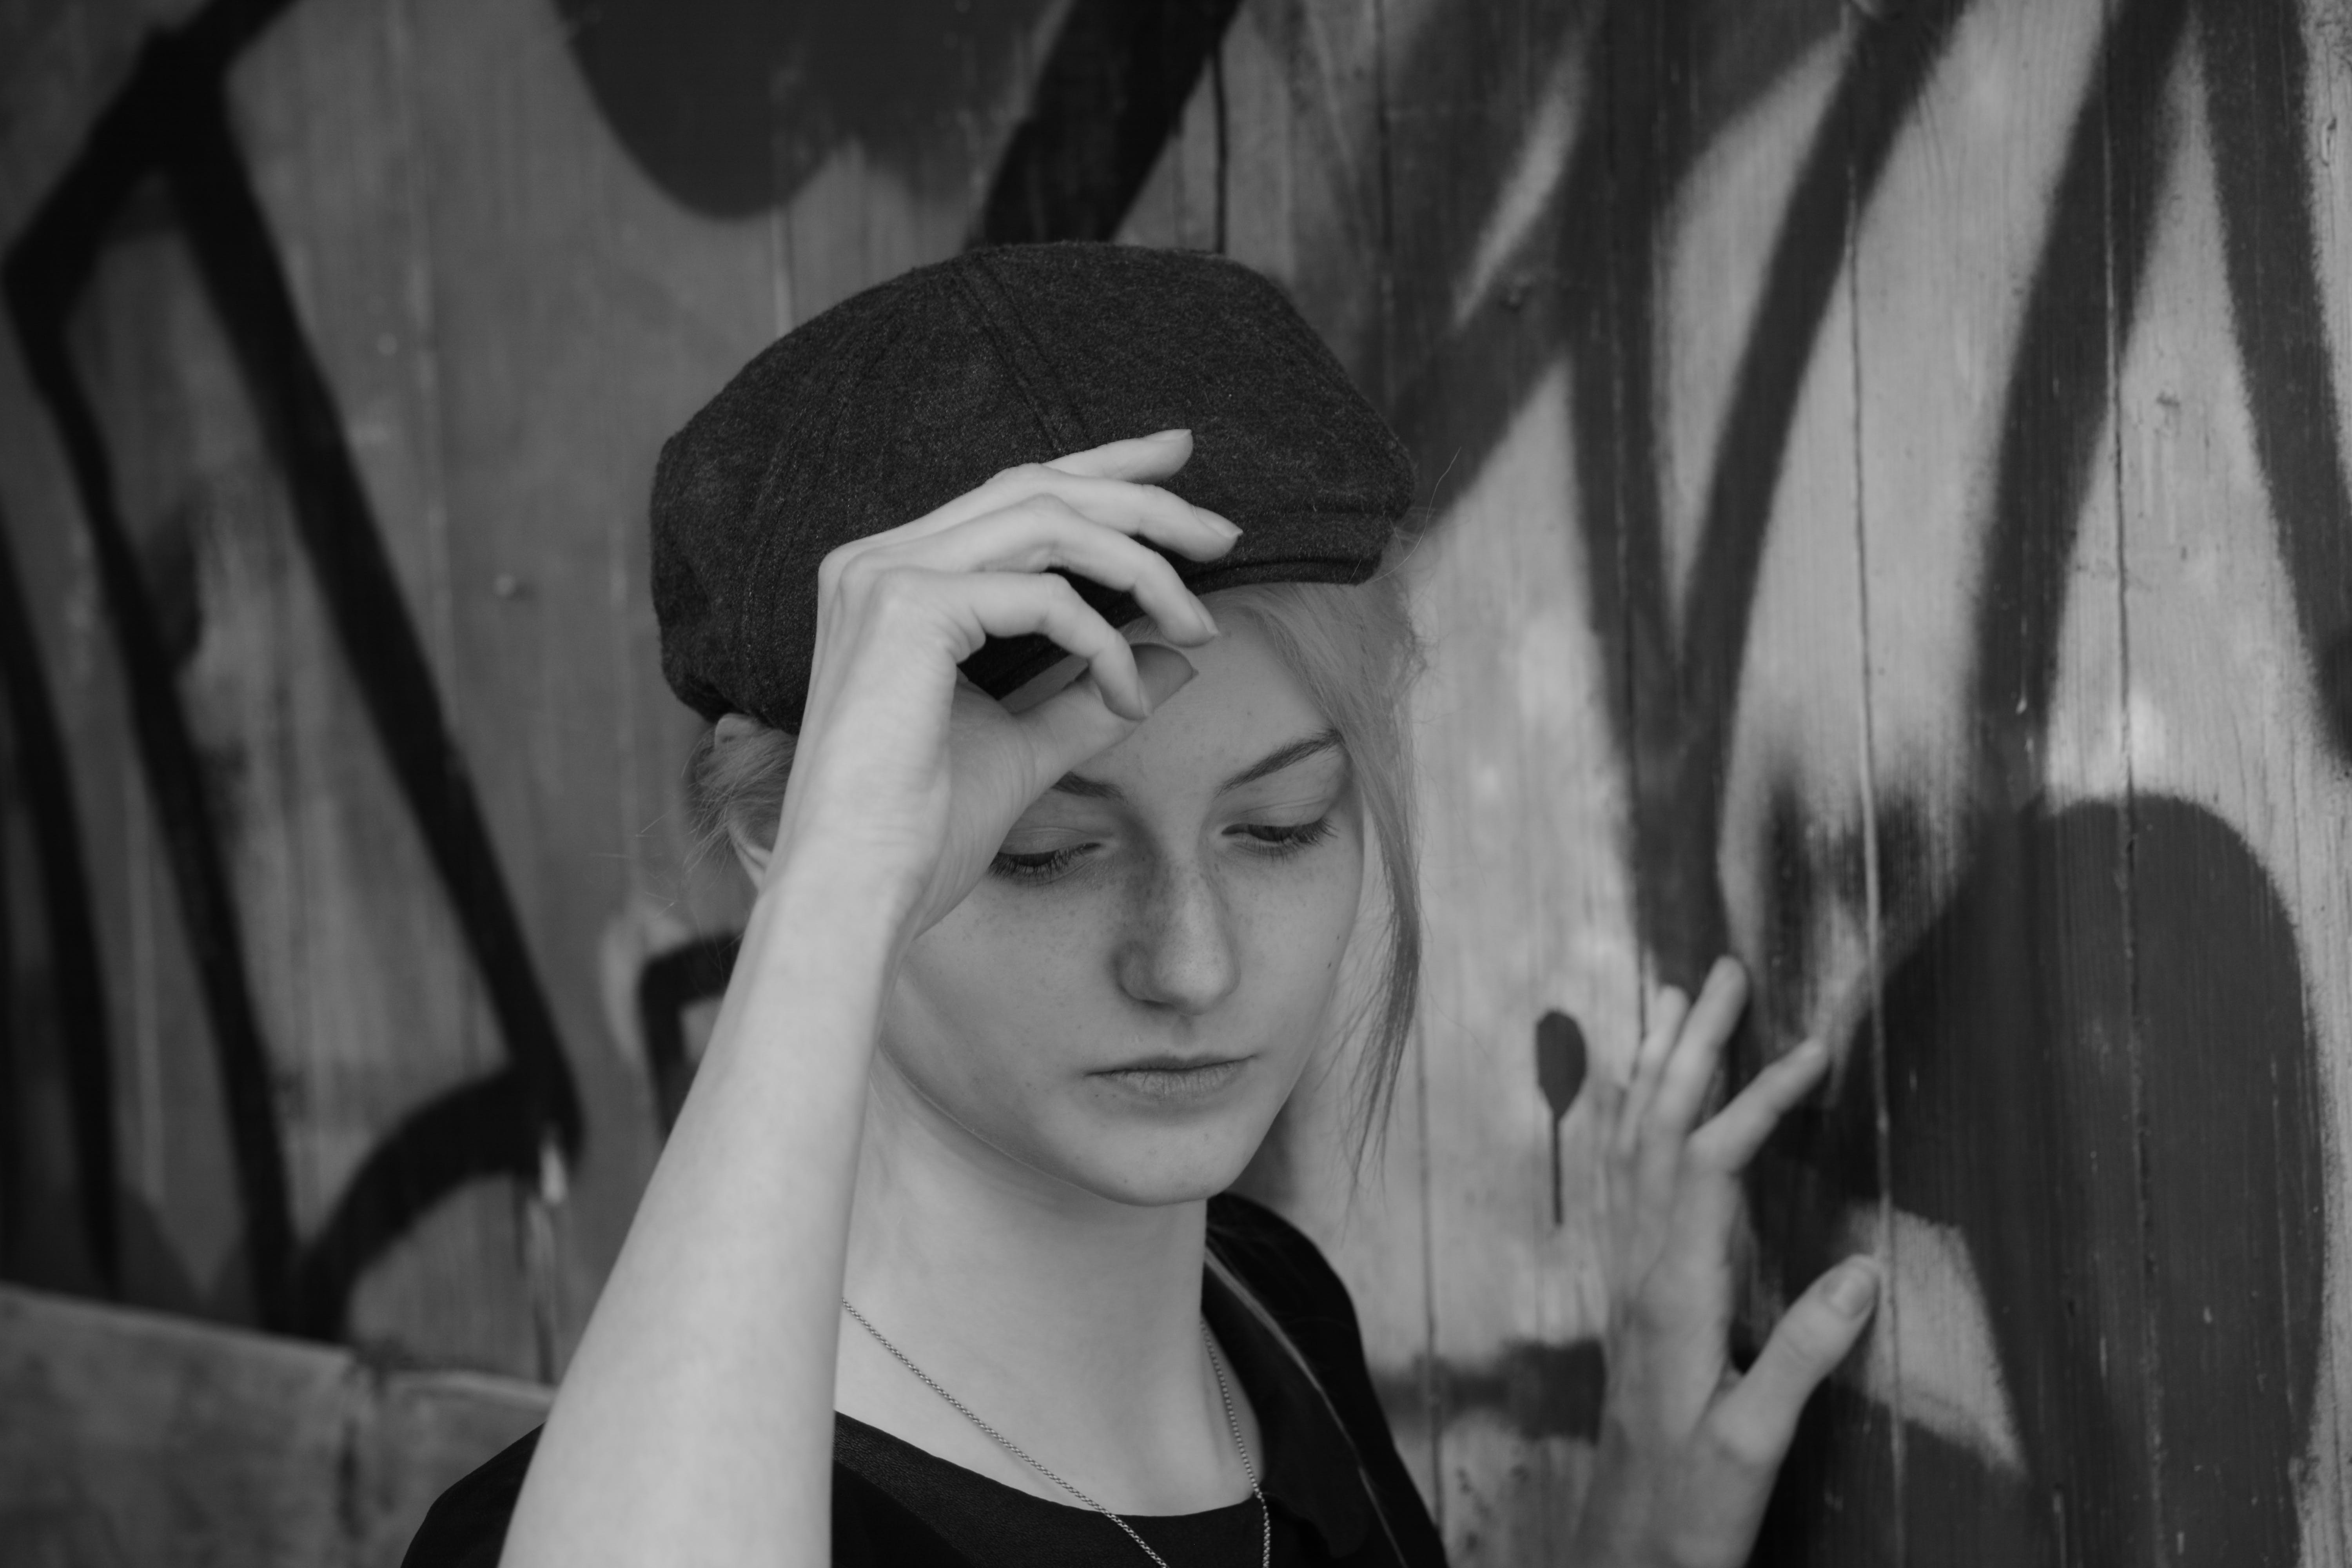 Woman Holding Her Cap in Grayscale